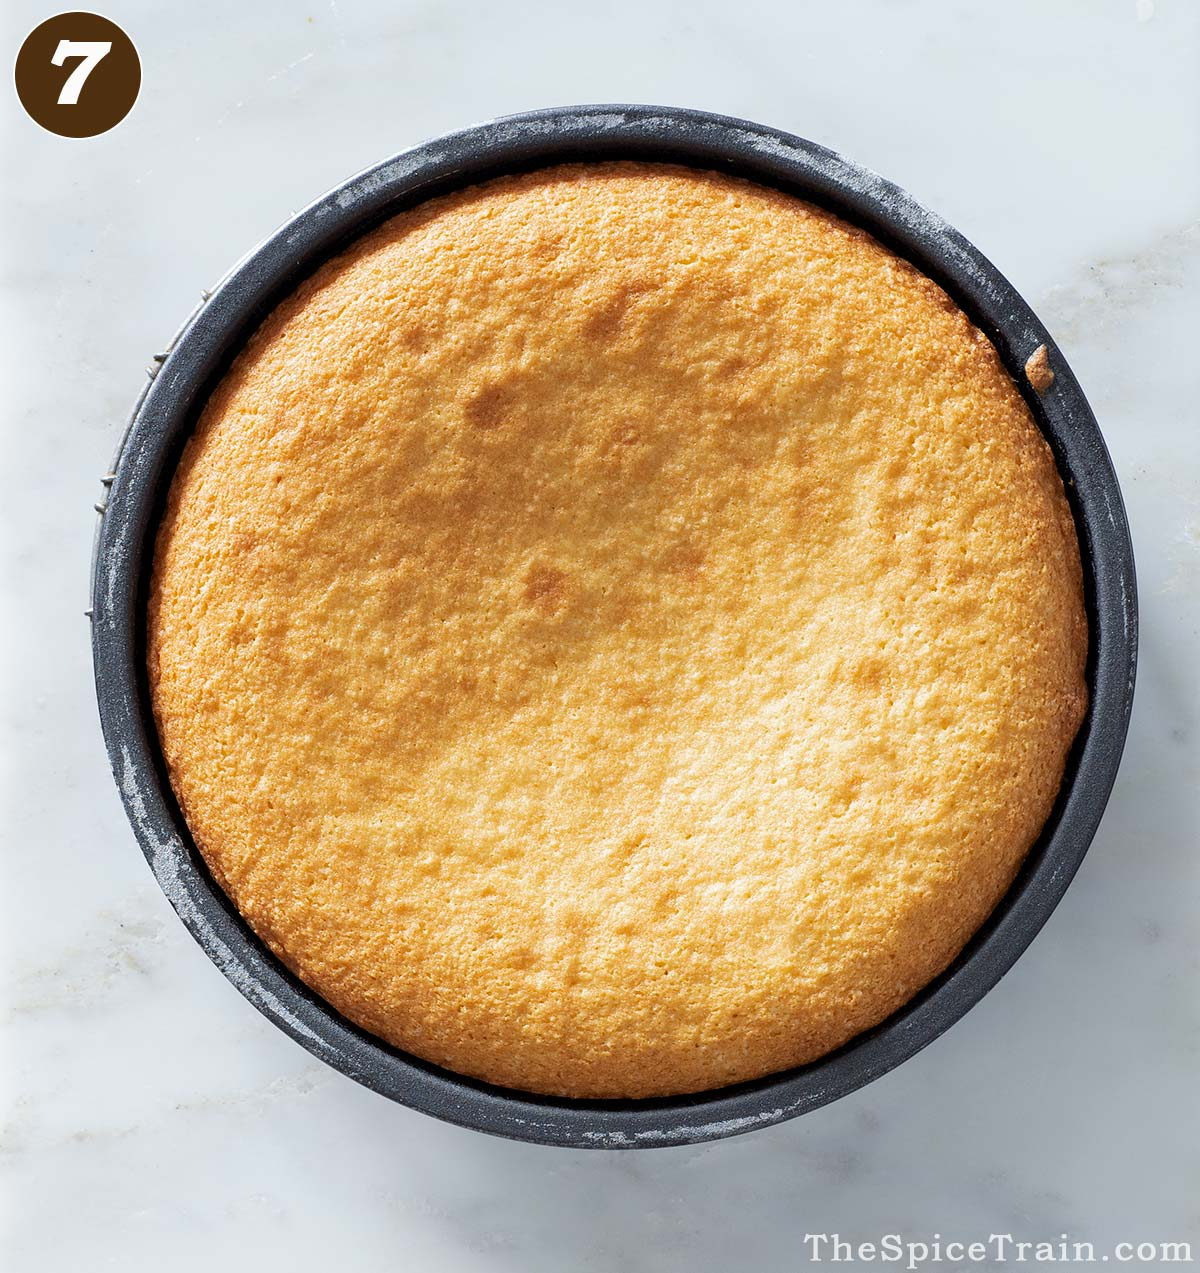 Baked cake in a round cake pan.